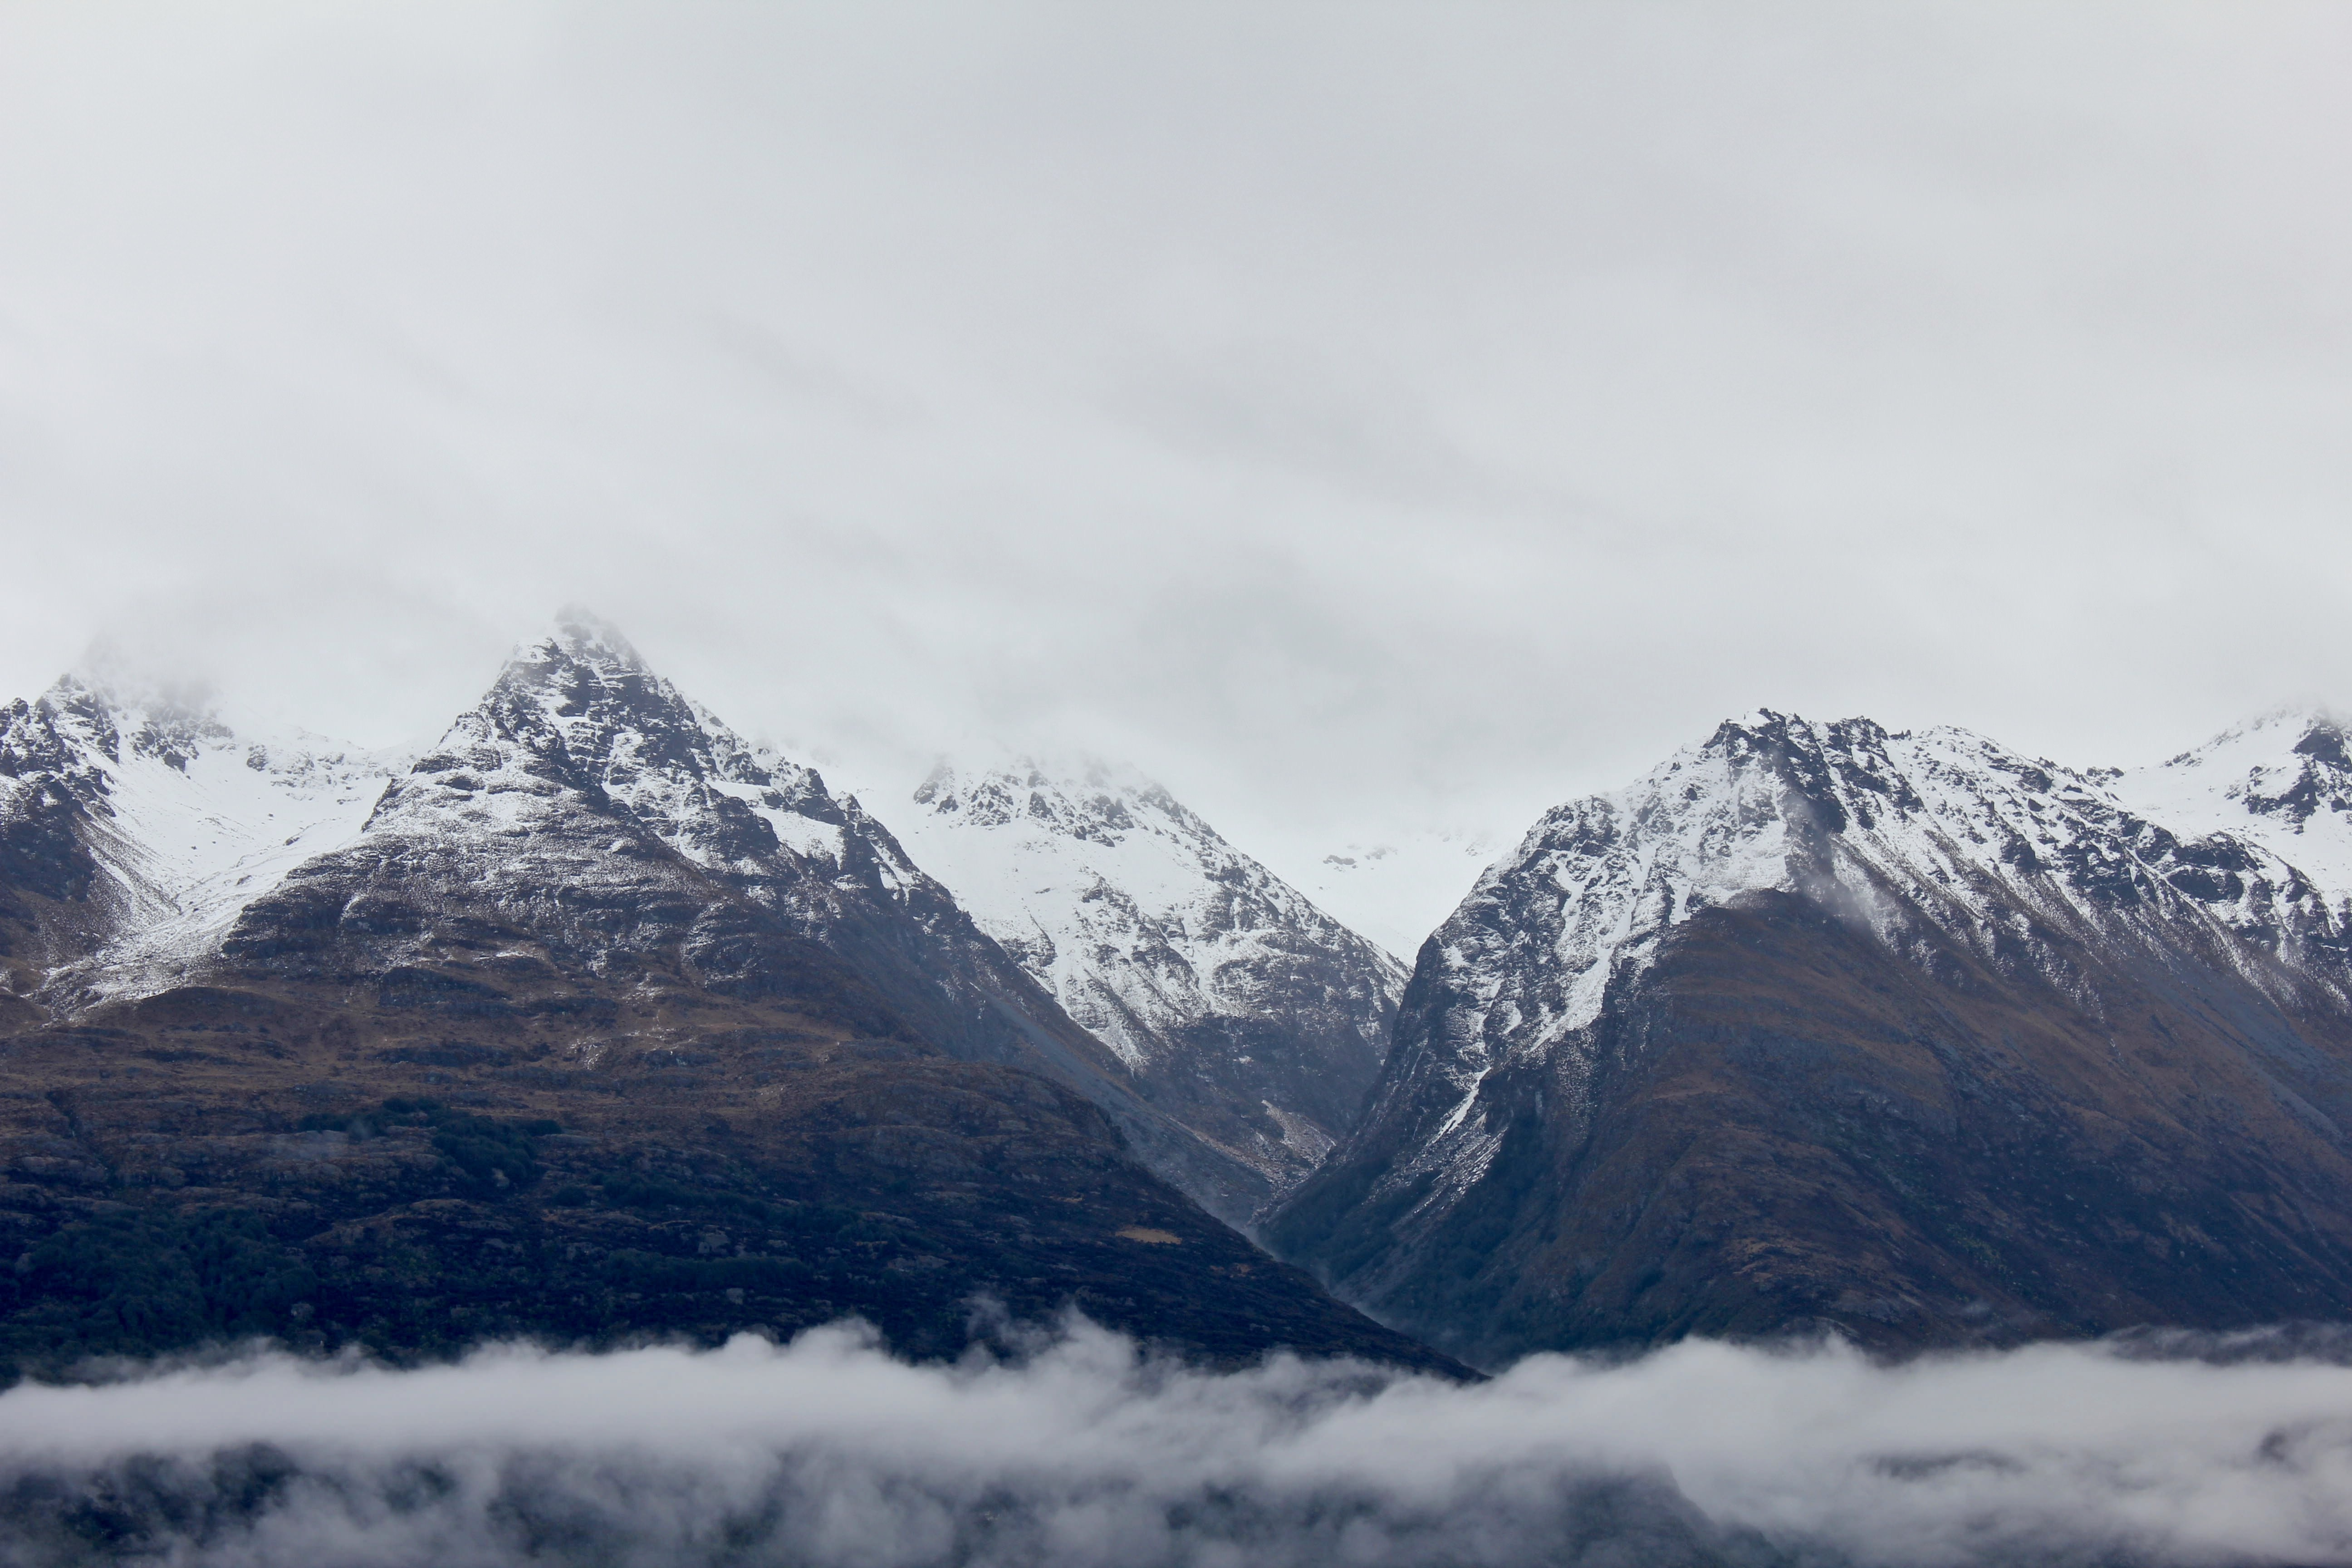 Snow covered mountain peaks surrounded by clouds in Queenstown.